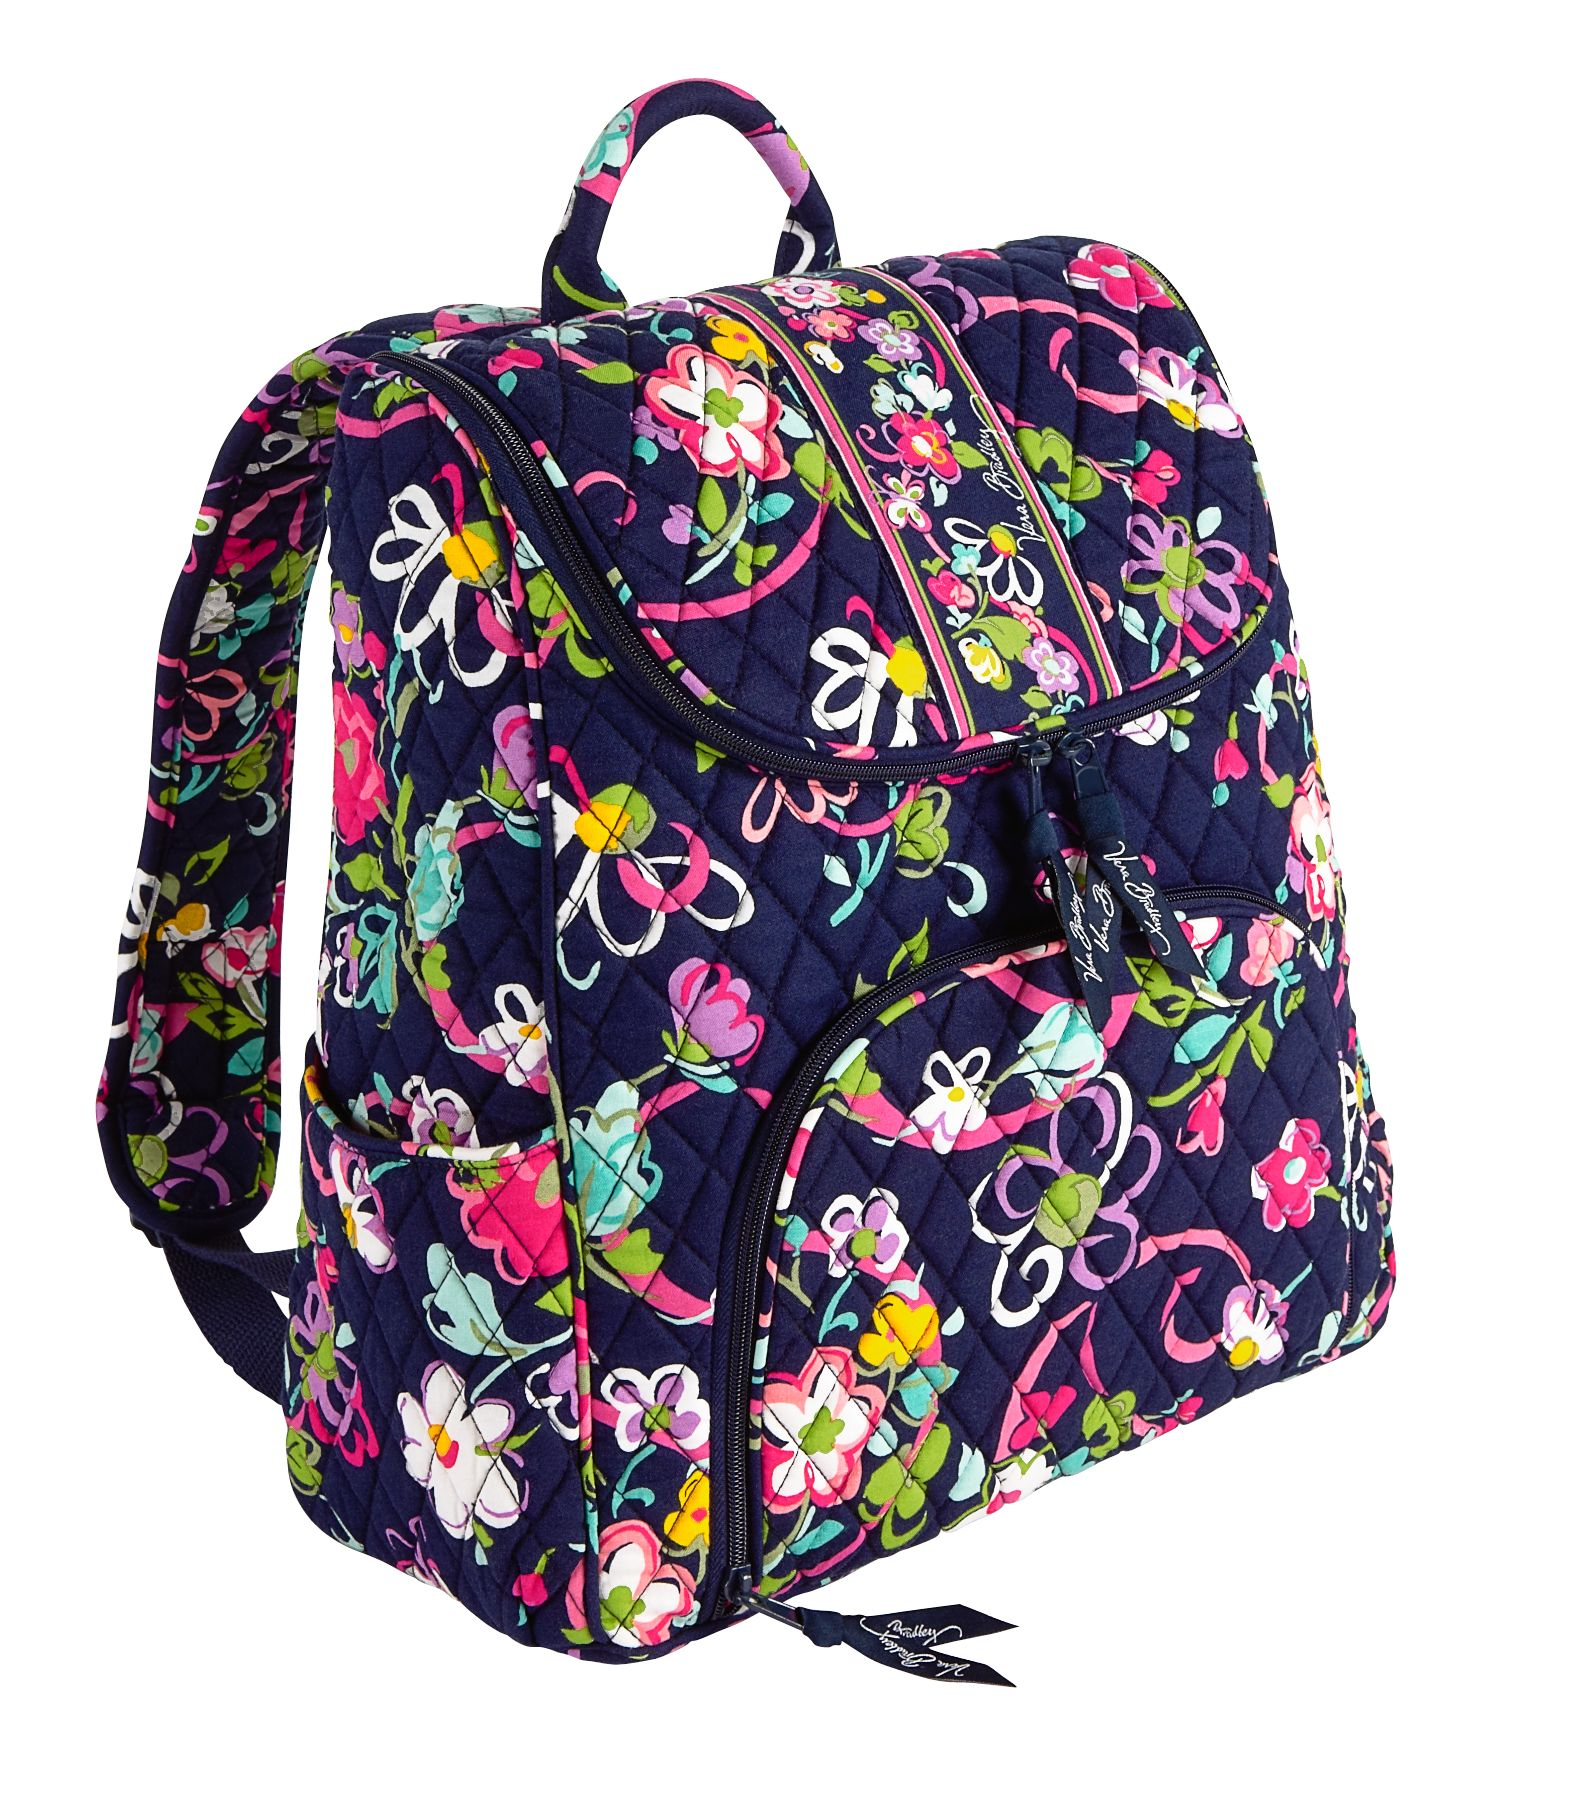 Shop discount vera bradley bags from Vera Bradley and from download-free-carlos.tk, download-free-carlos.tk, Macy's and many more. Find thousands of new high fashion items in one place. Skip to Content Matches found. Use the down & up arrow to navigate through the list and enter to select.